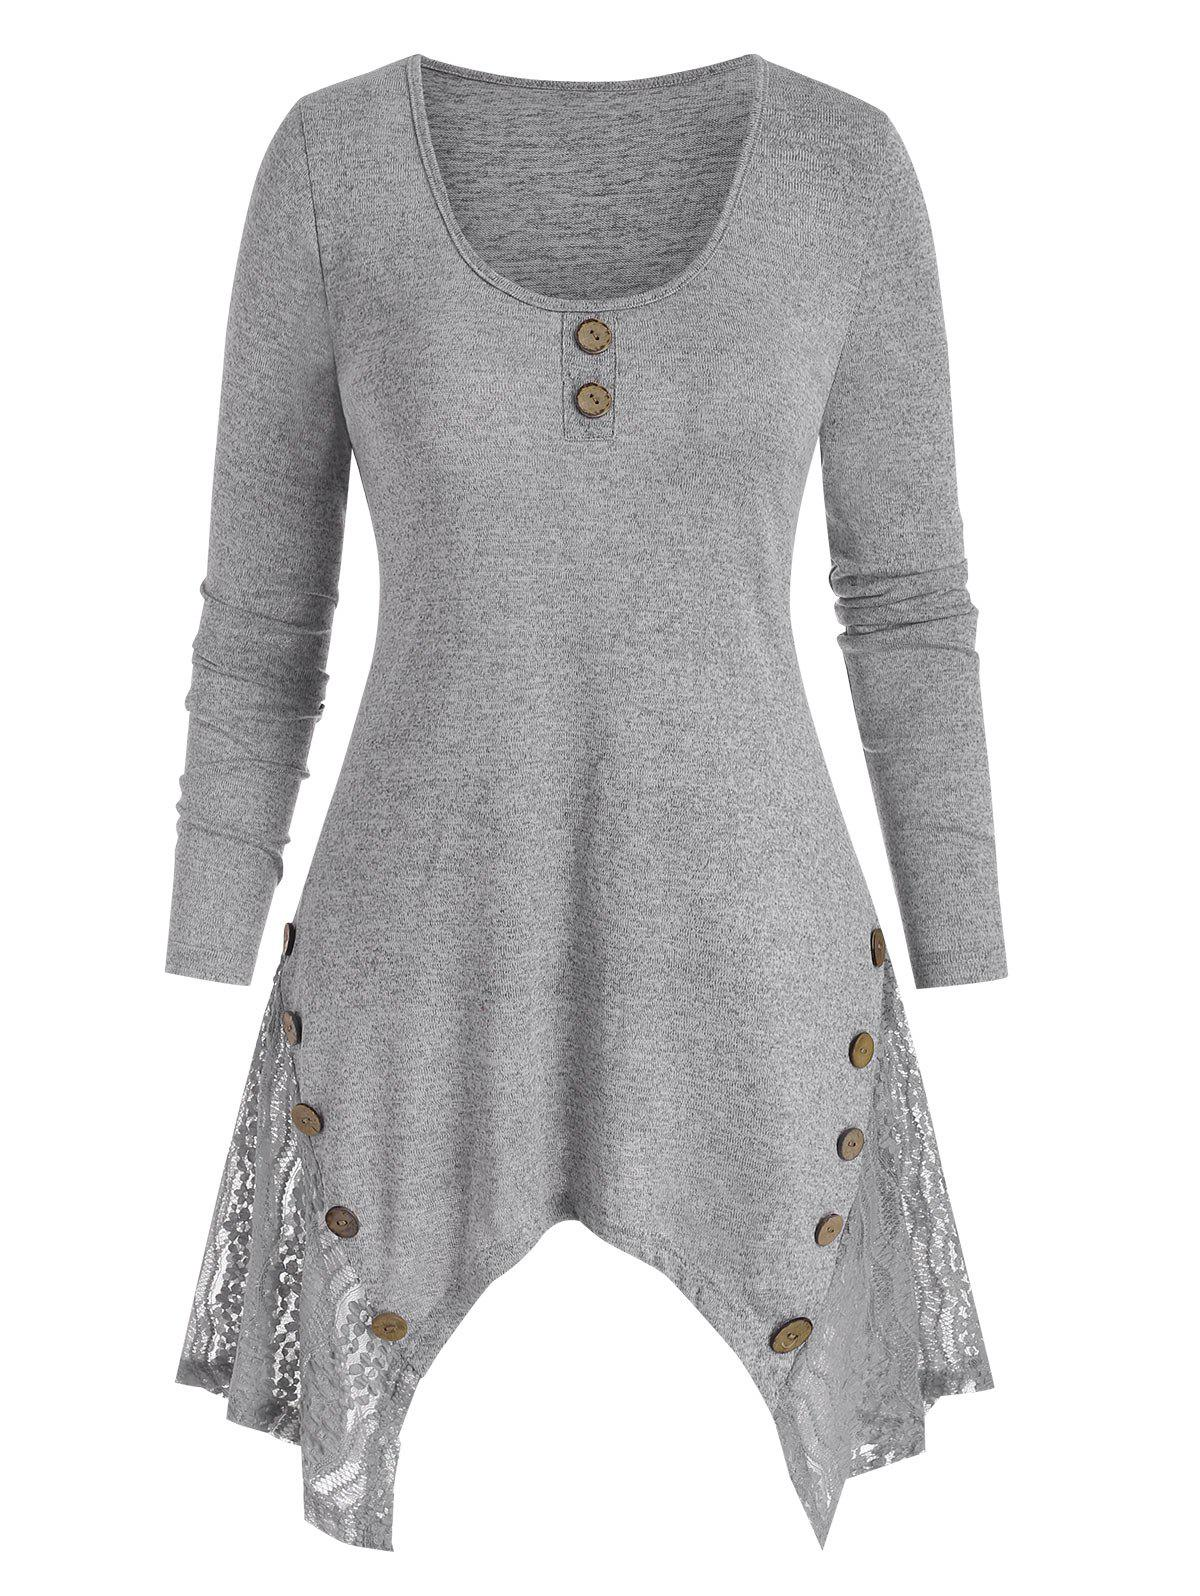 Lace Panel Asymmetrical Buttoned Tunic Knitwear - LIGHT GRAY M